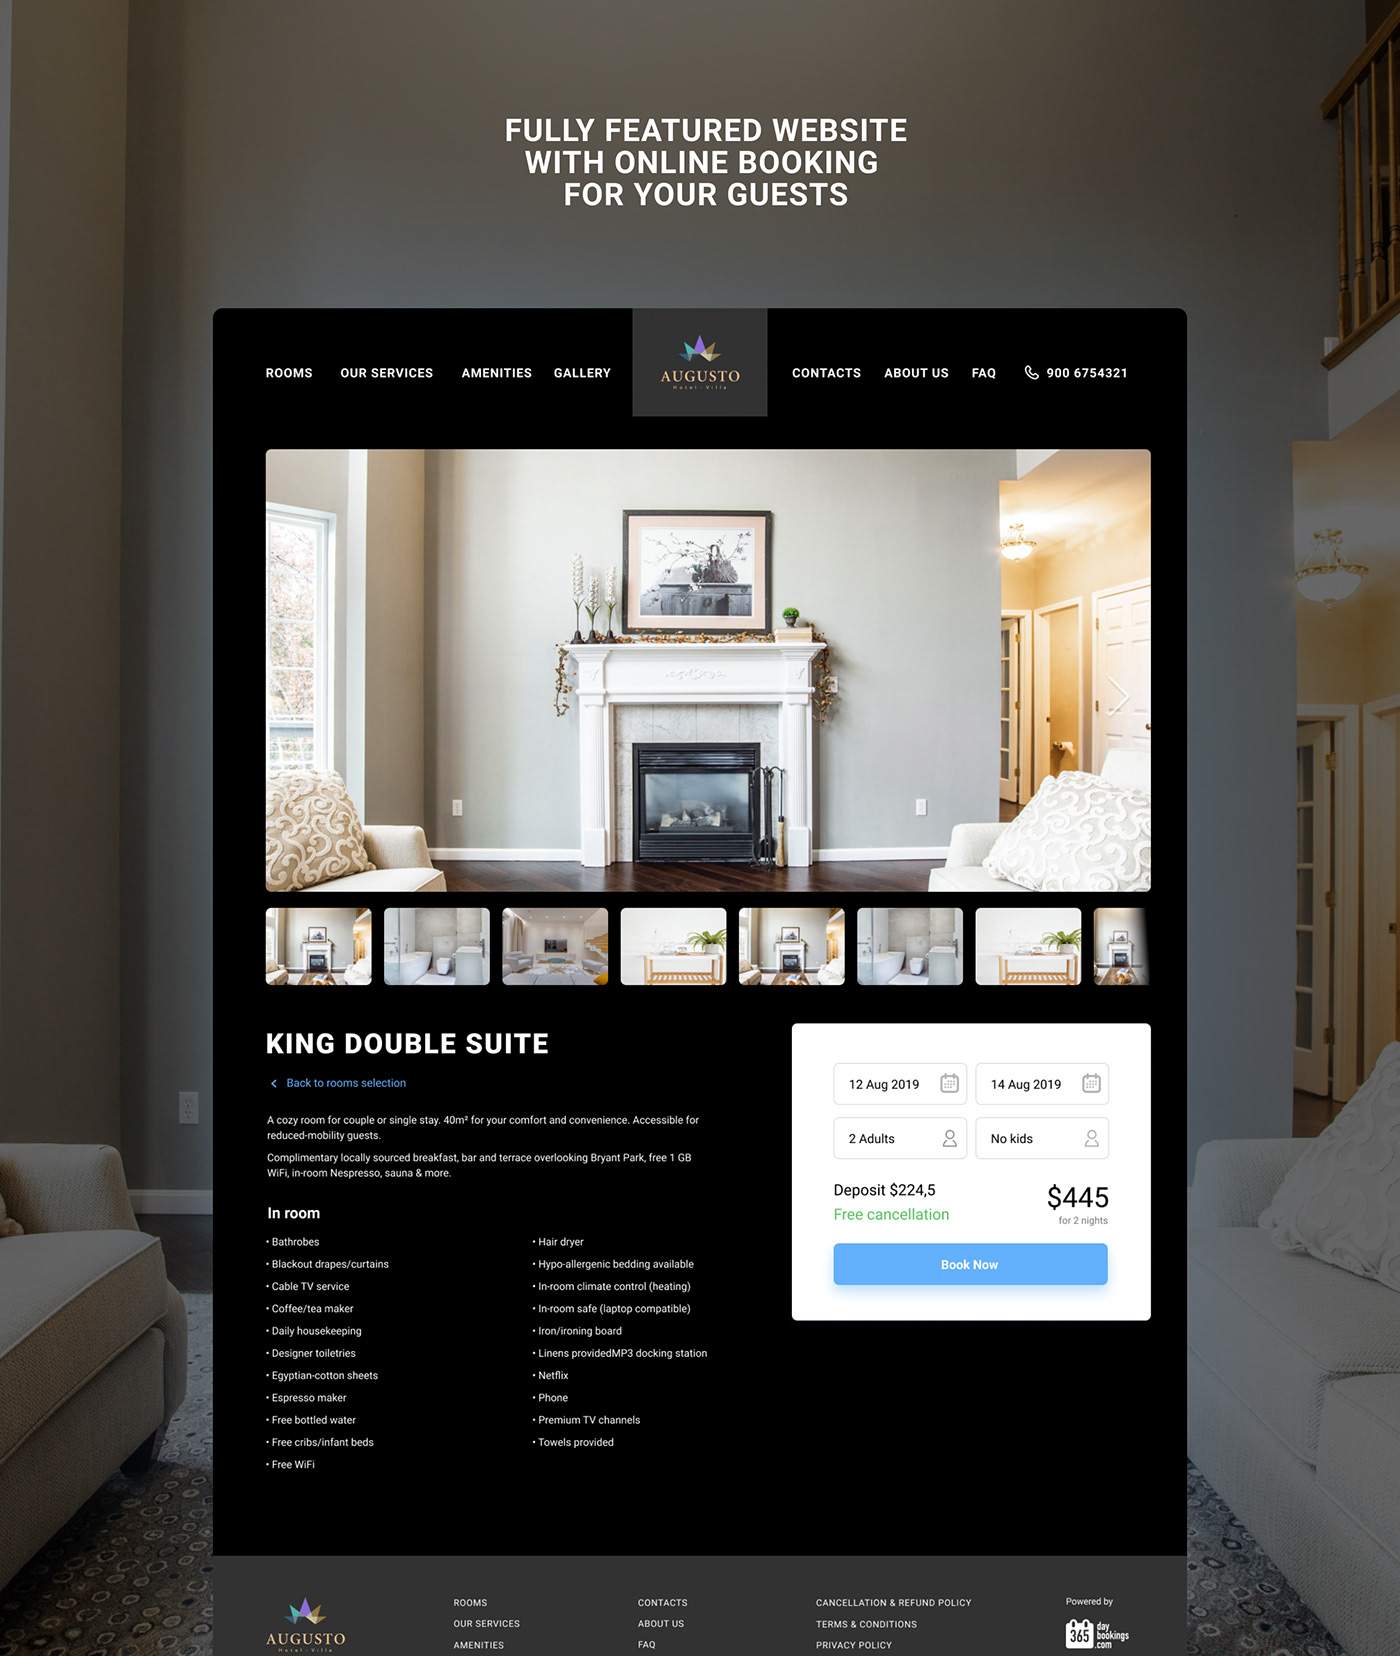 Fully featured hotel website with online booking